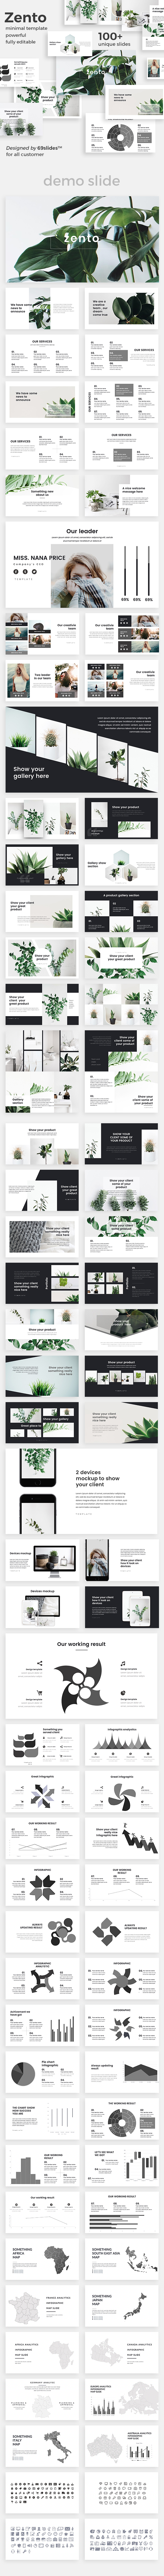 Zento Creative Powerpoint Template - Creative PowerPoint Templates